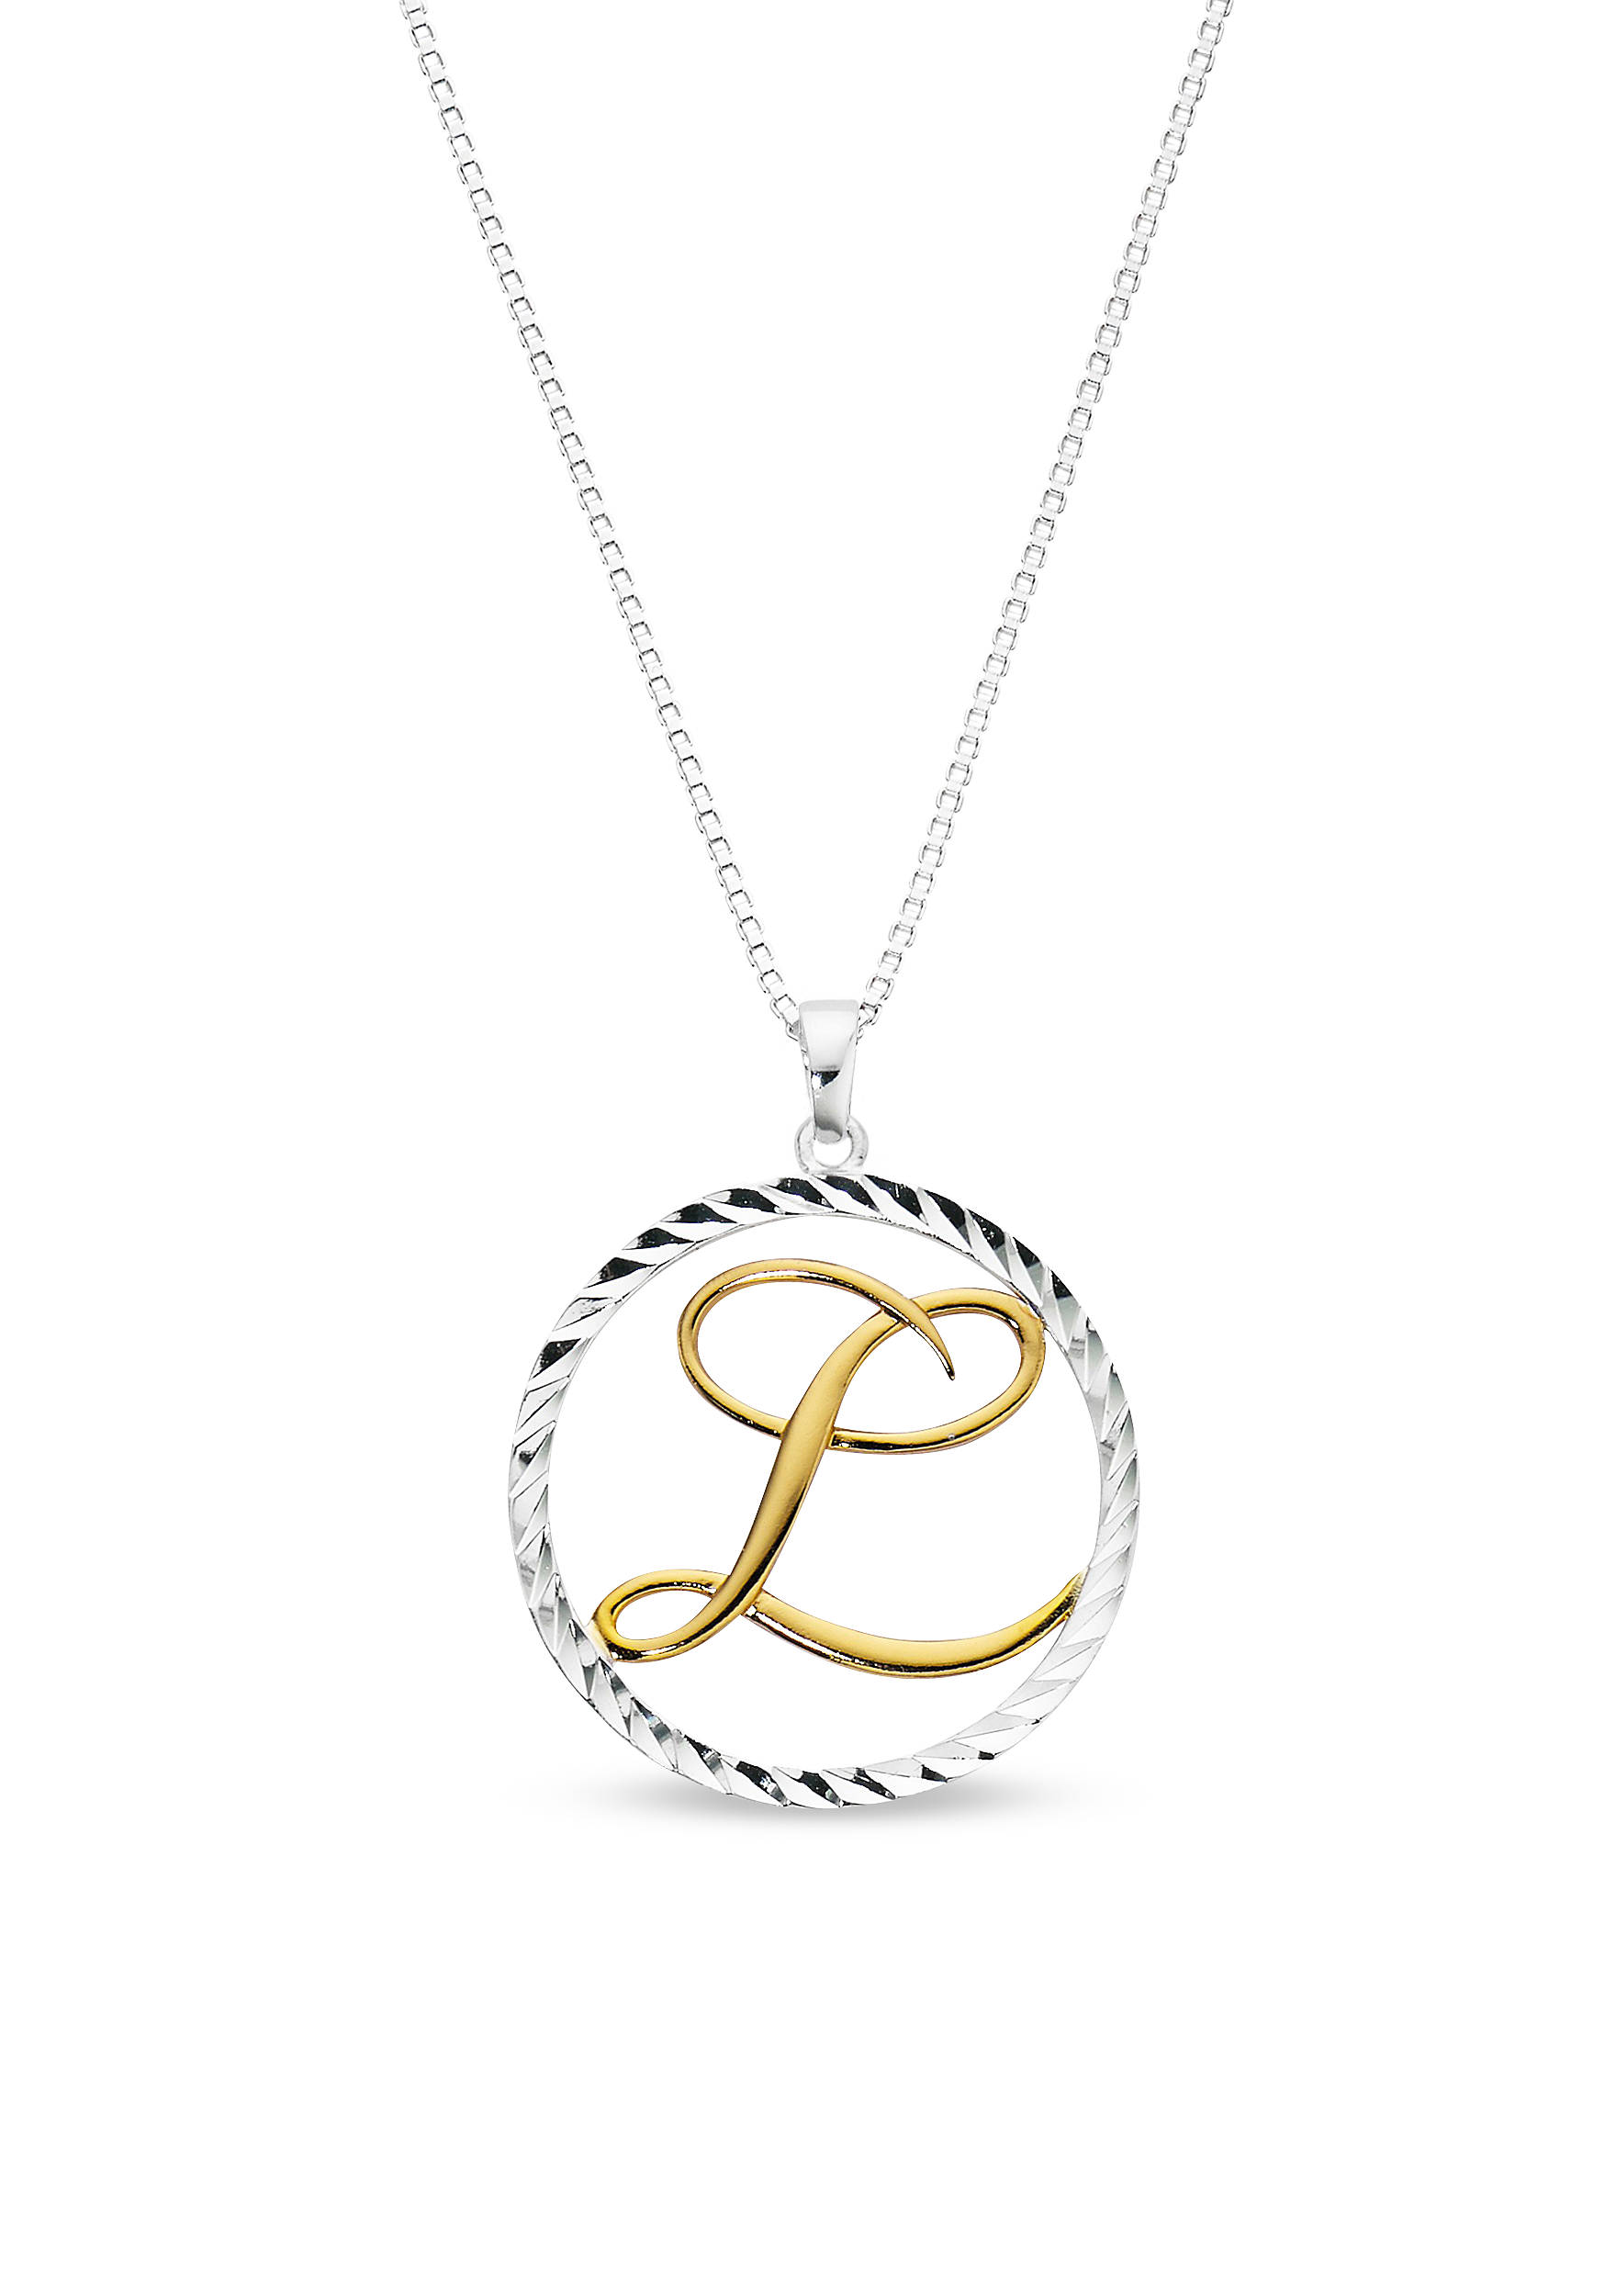 Belk silverworks two tone pure 100 initial l pendant necklace belk back to necklaces belk silverworks two tone pure 100 initial l pendant necklace aloadofball Gallery